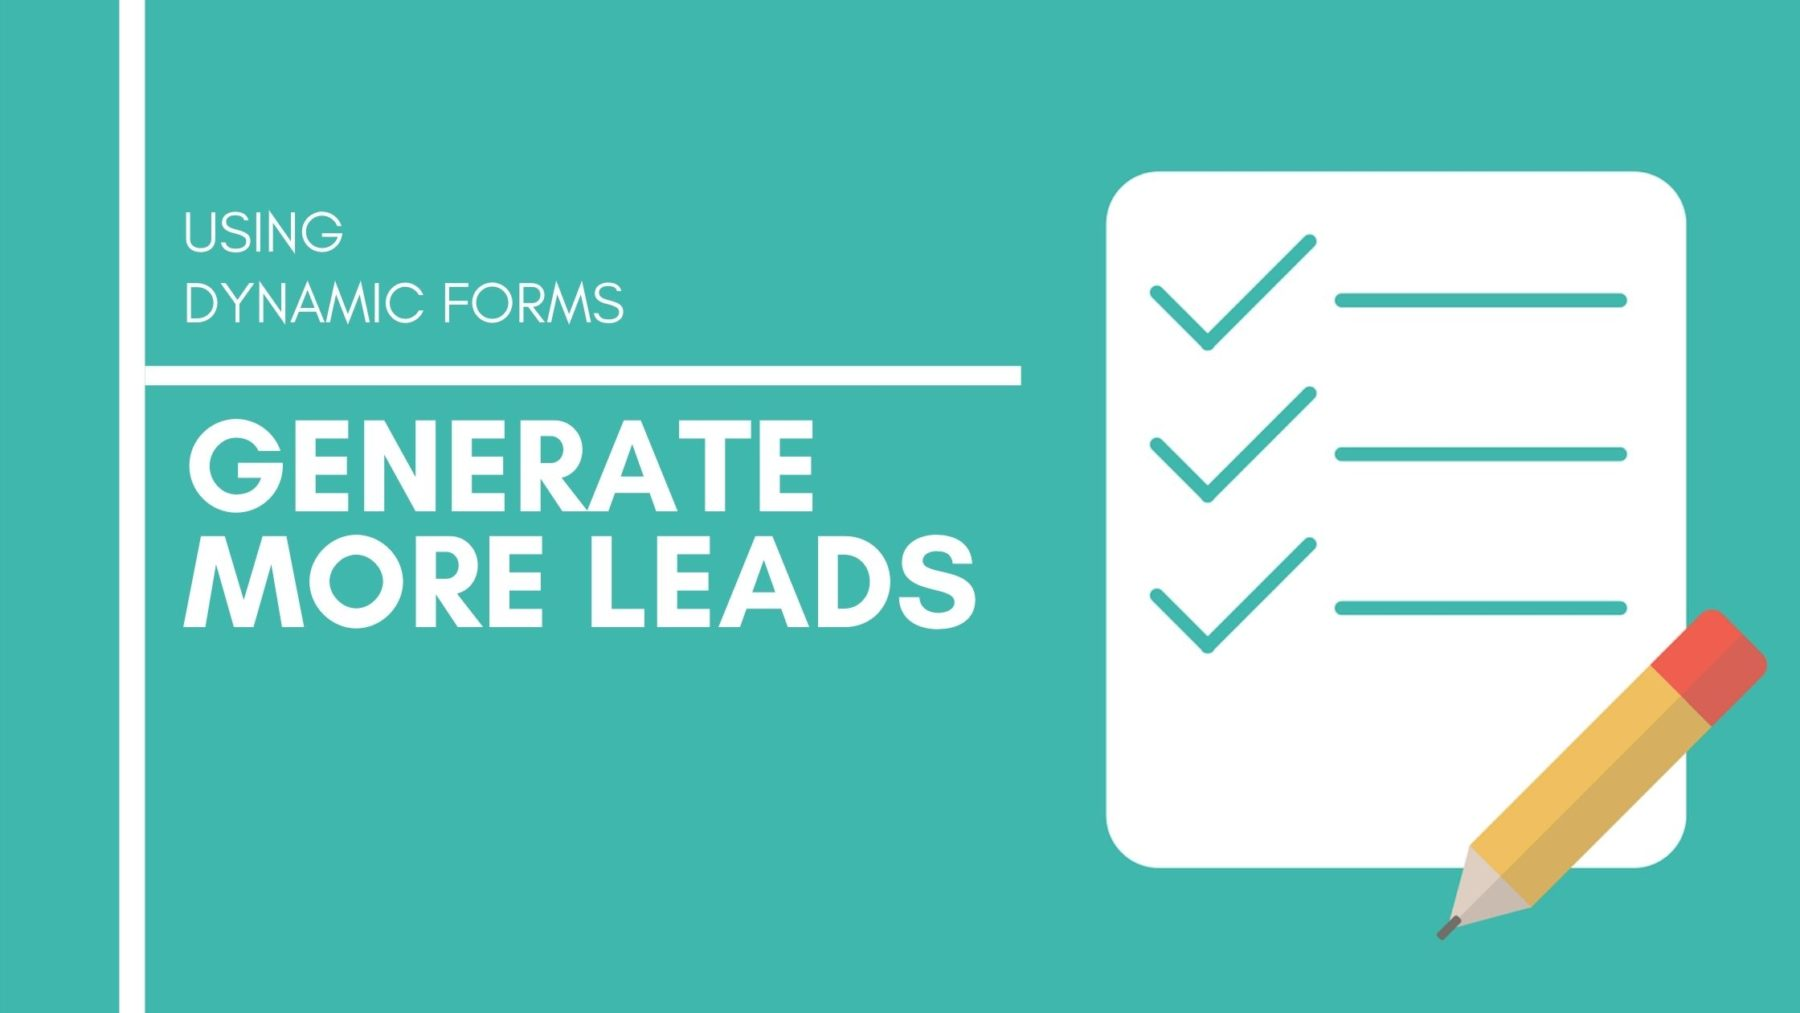 Using Forms to Generate more business leads - Munro Agency Blog